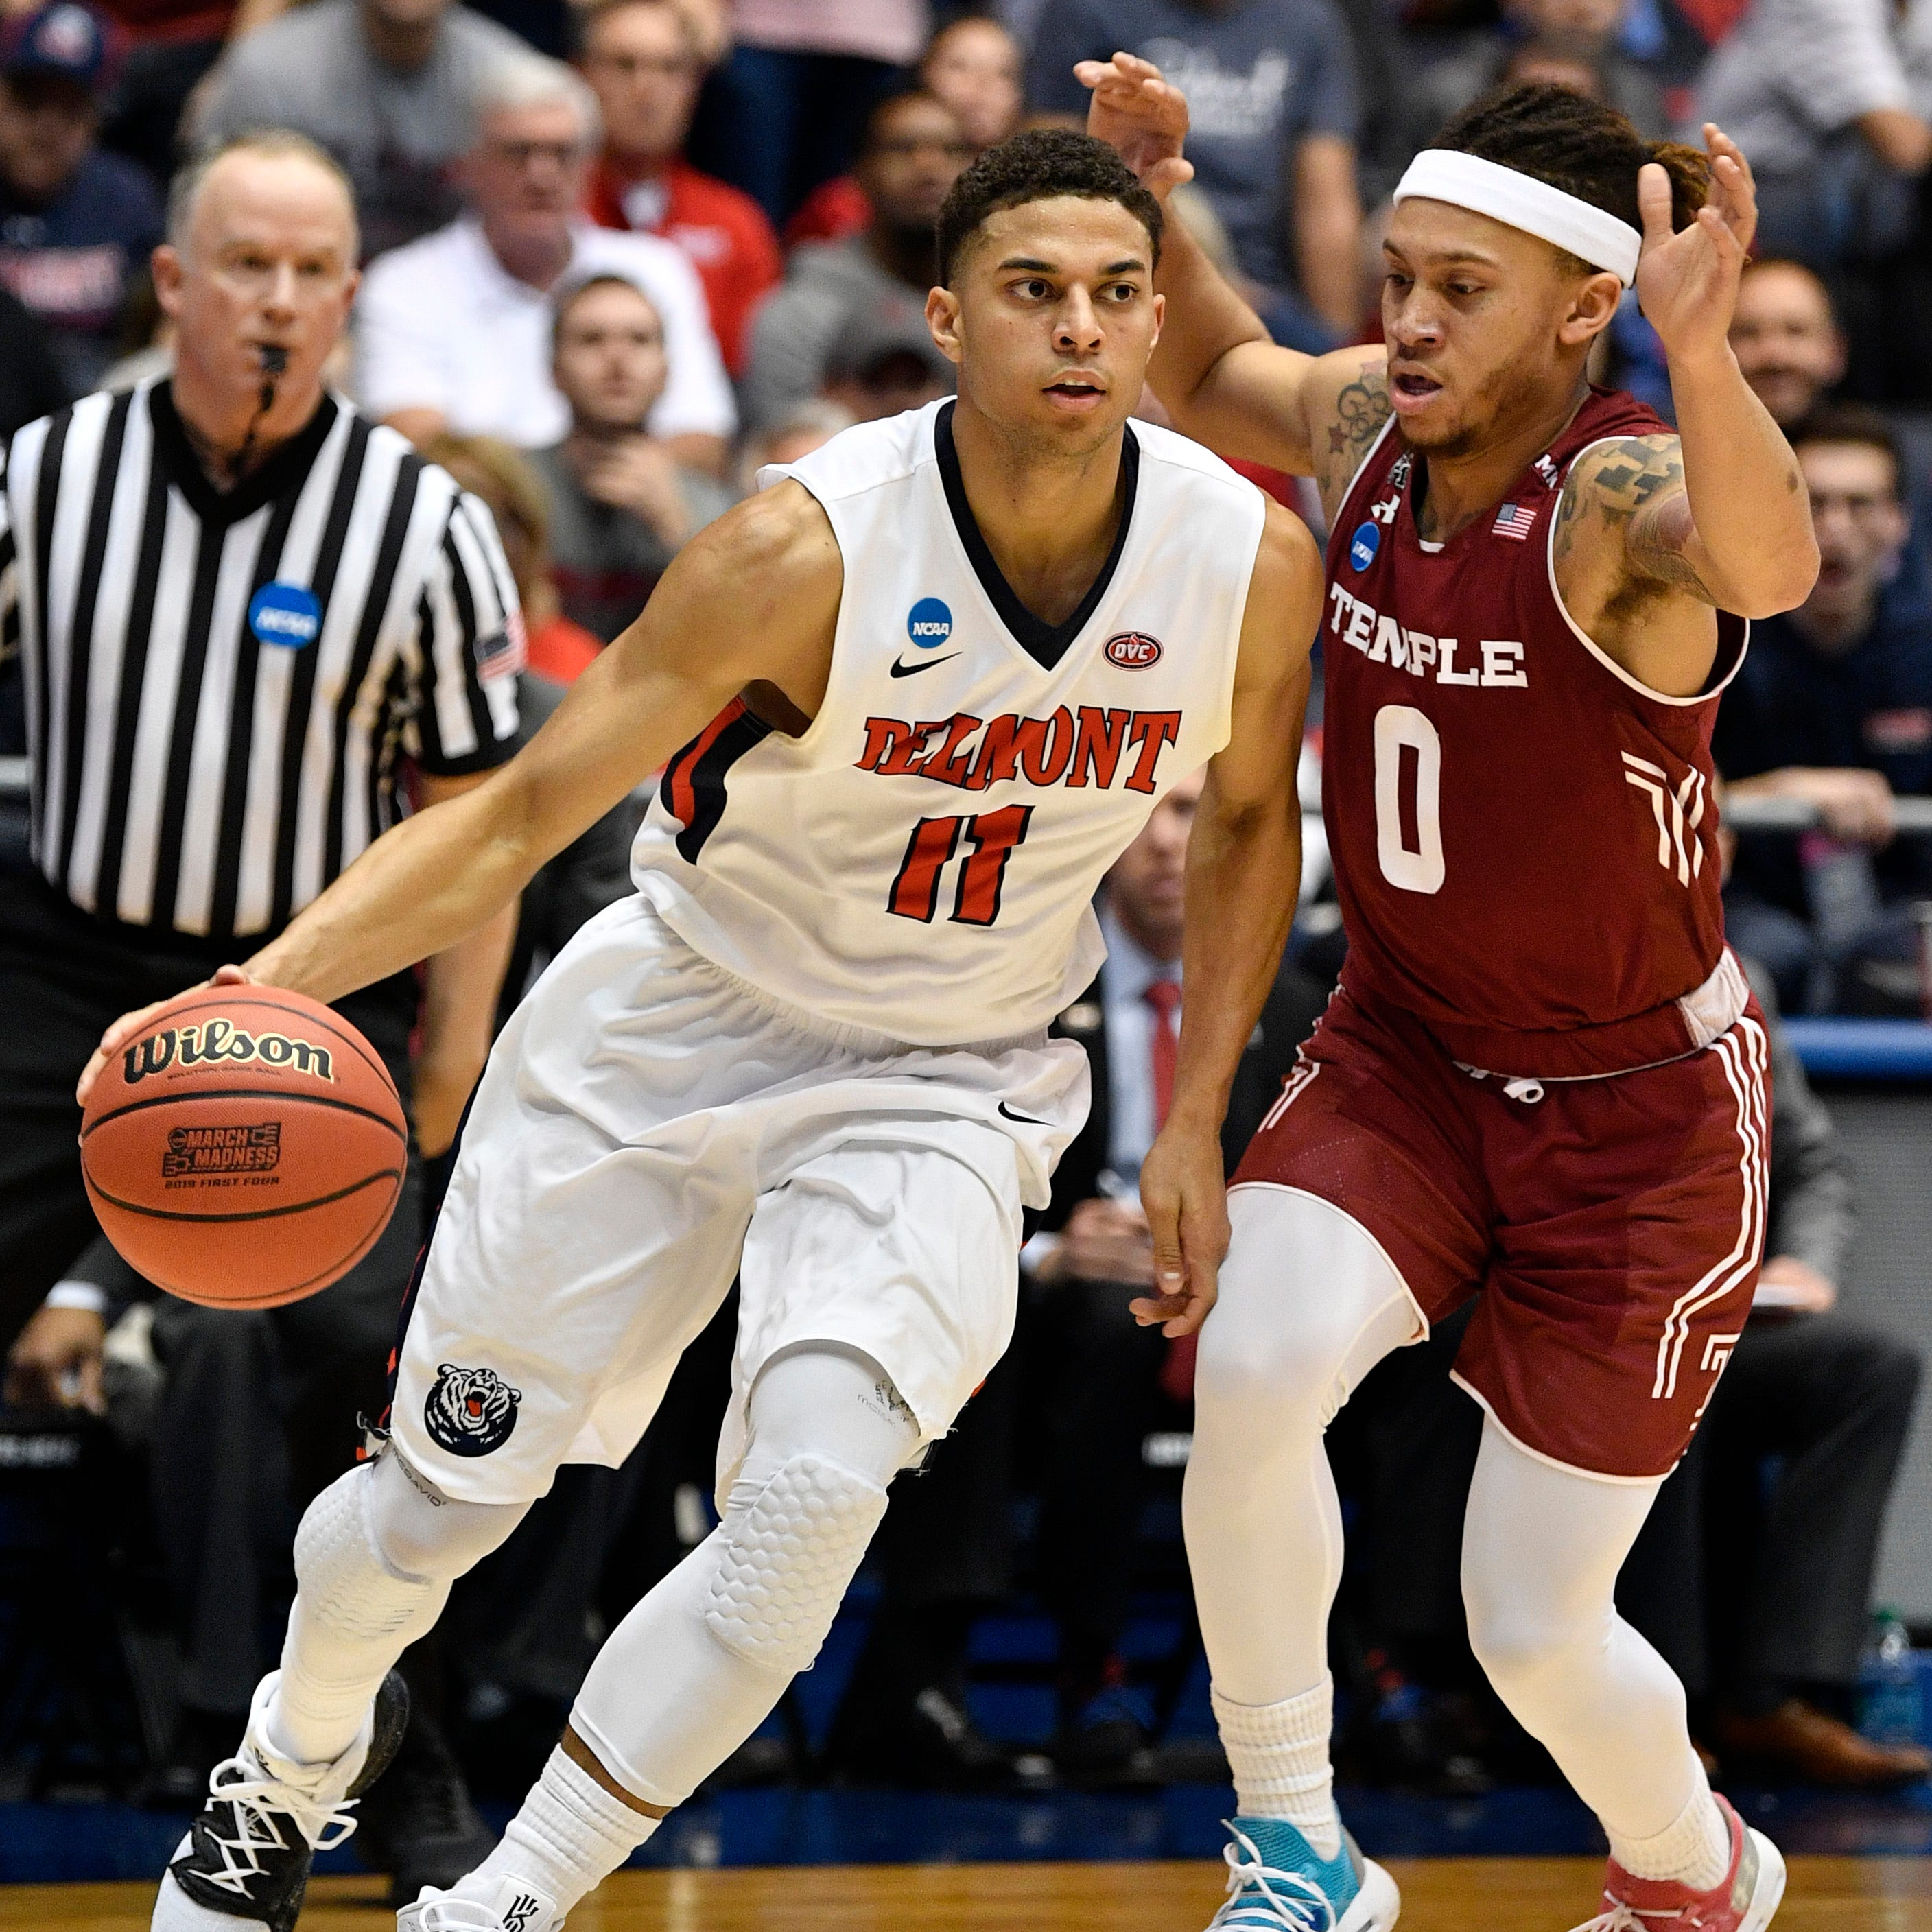 Belmont claims first NCAA Tournament victory, beats Temple 81-70